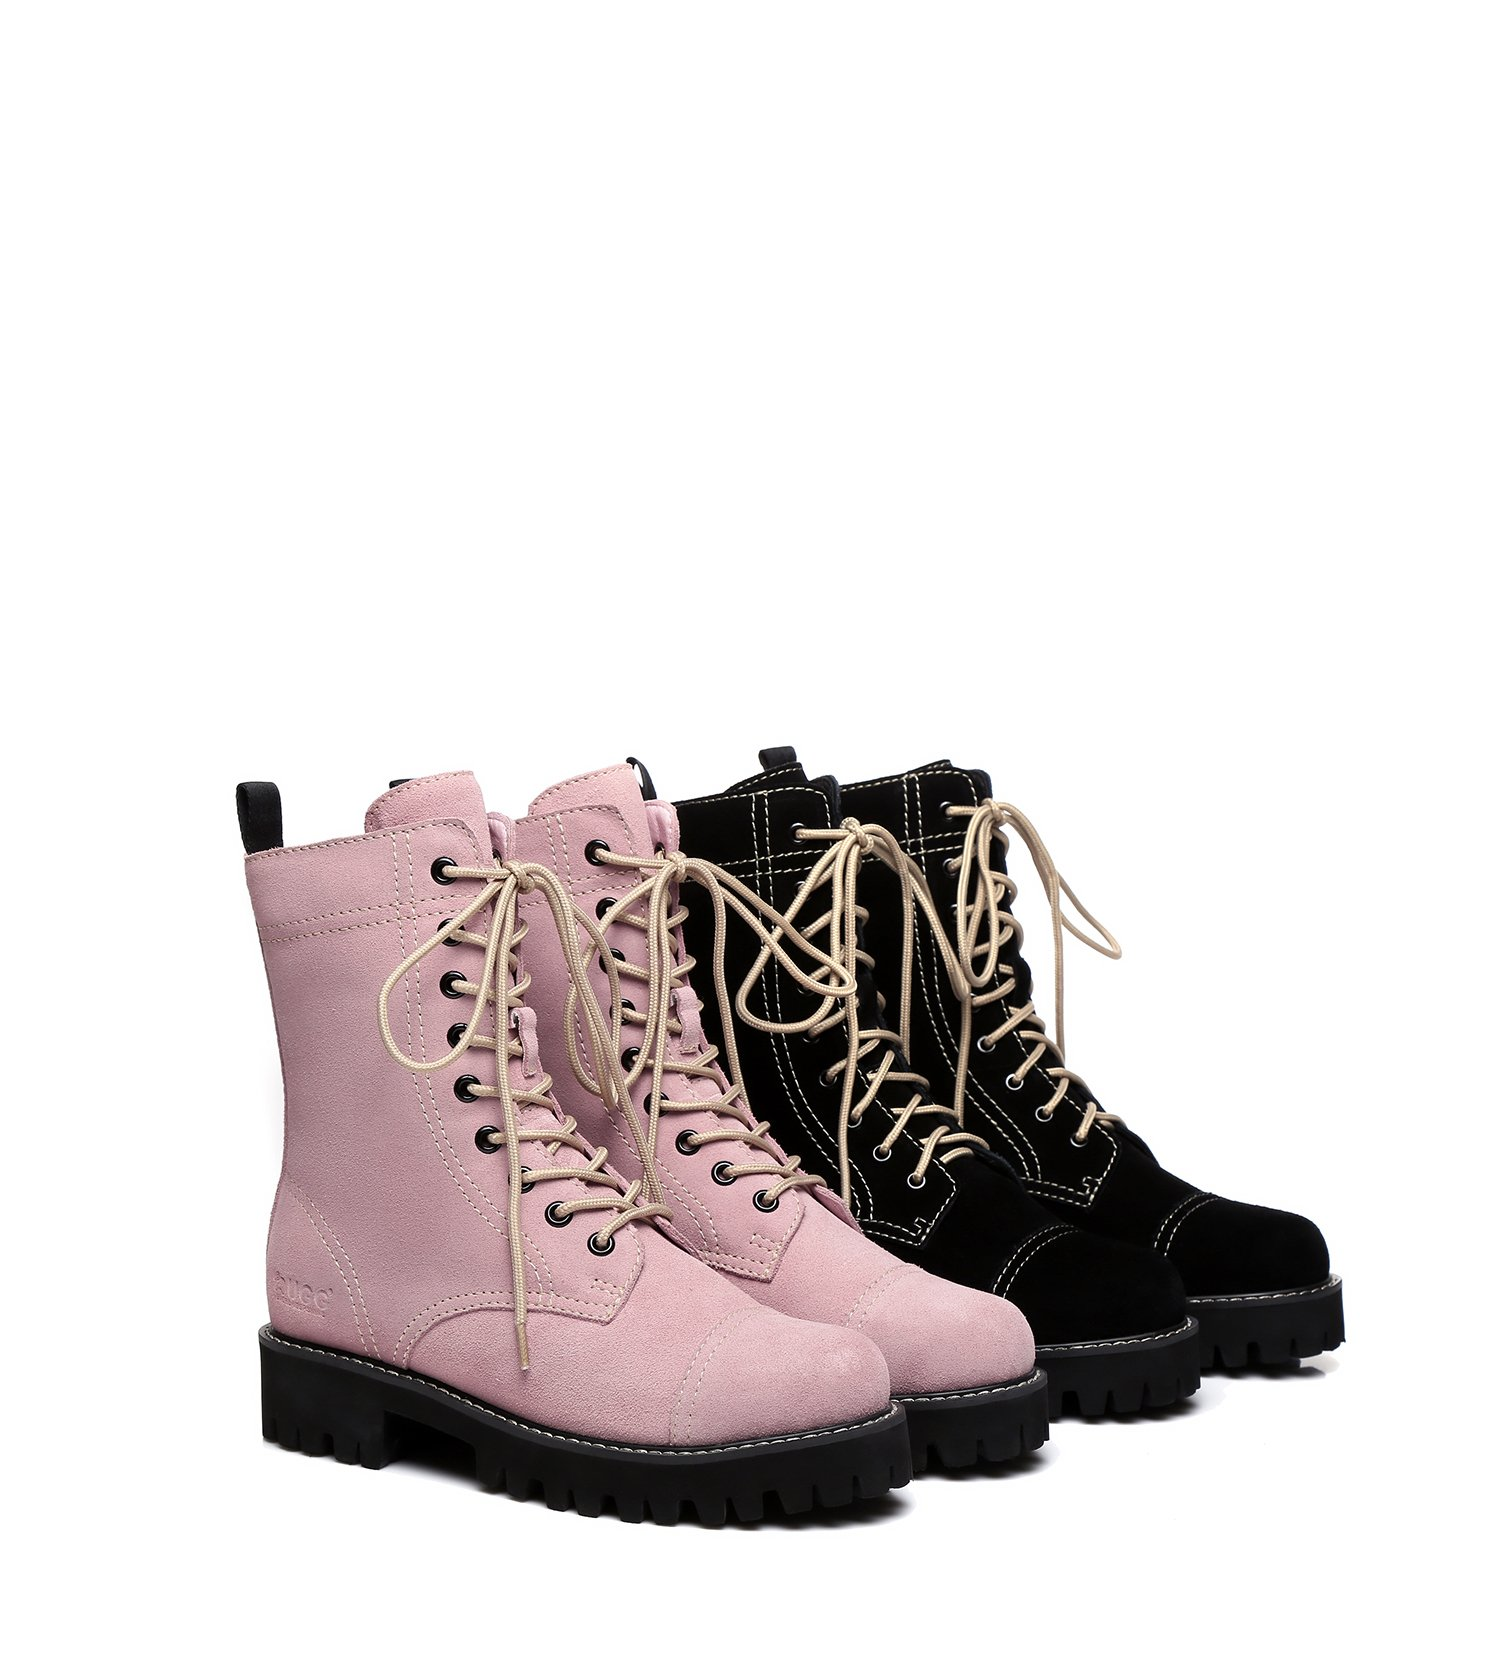 ff976c936d04 Image of EVER UGG Boots Miss Idol - Ladies Fashion with Front Lace  Sheepskin Lining Cow